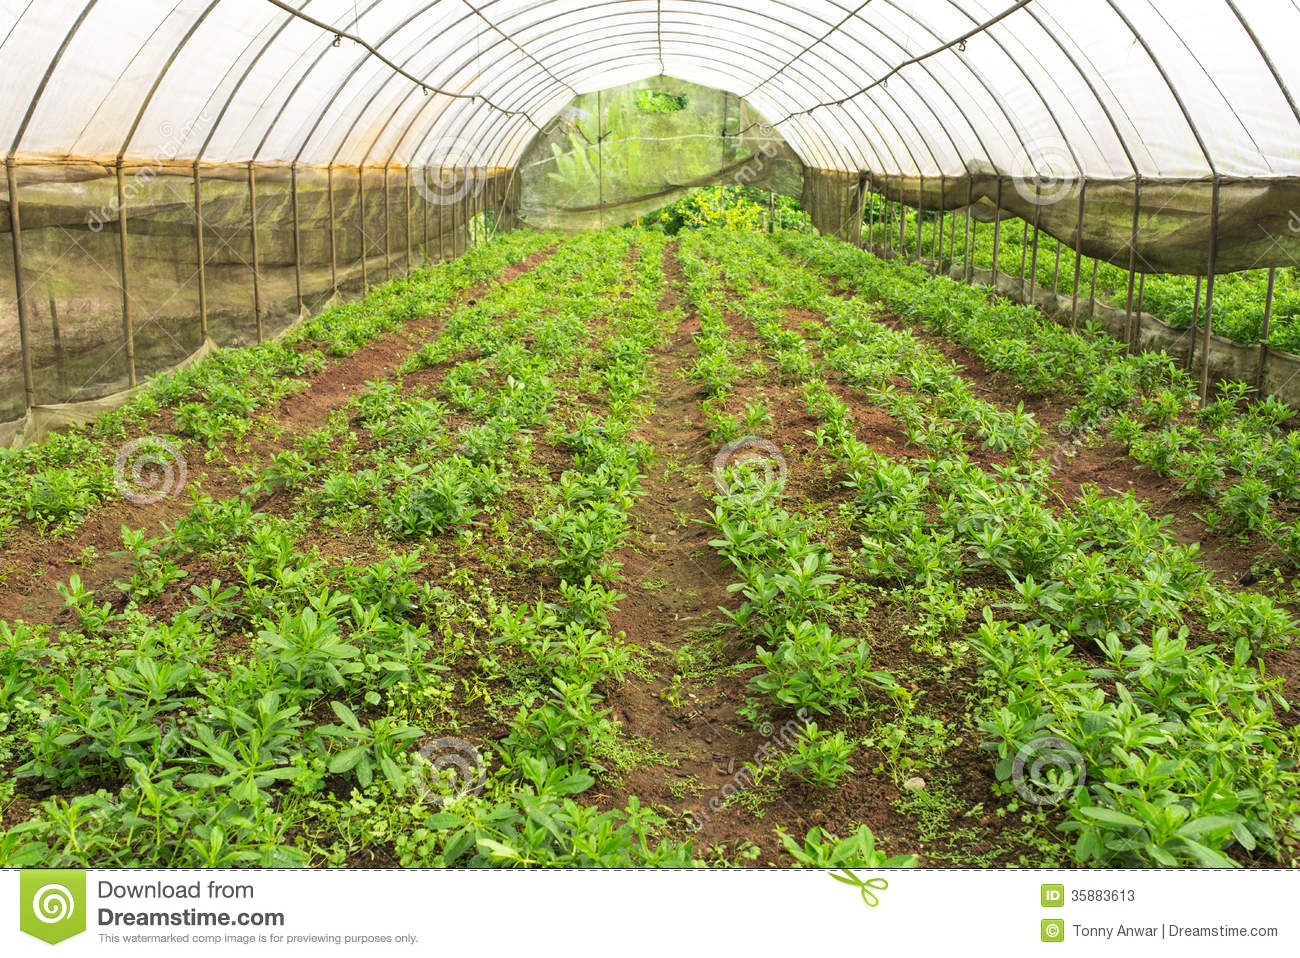 content industry agriculture seafood animals crops crop production greenhouse vegetables